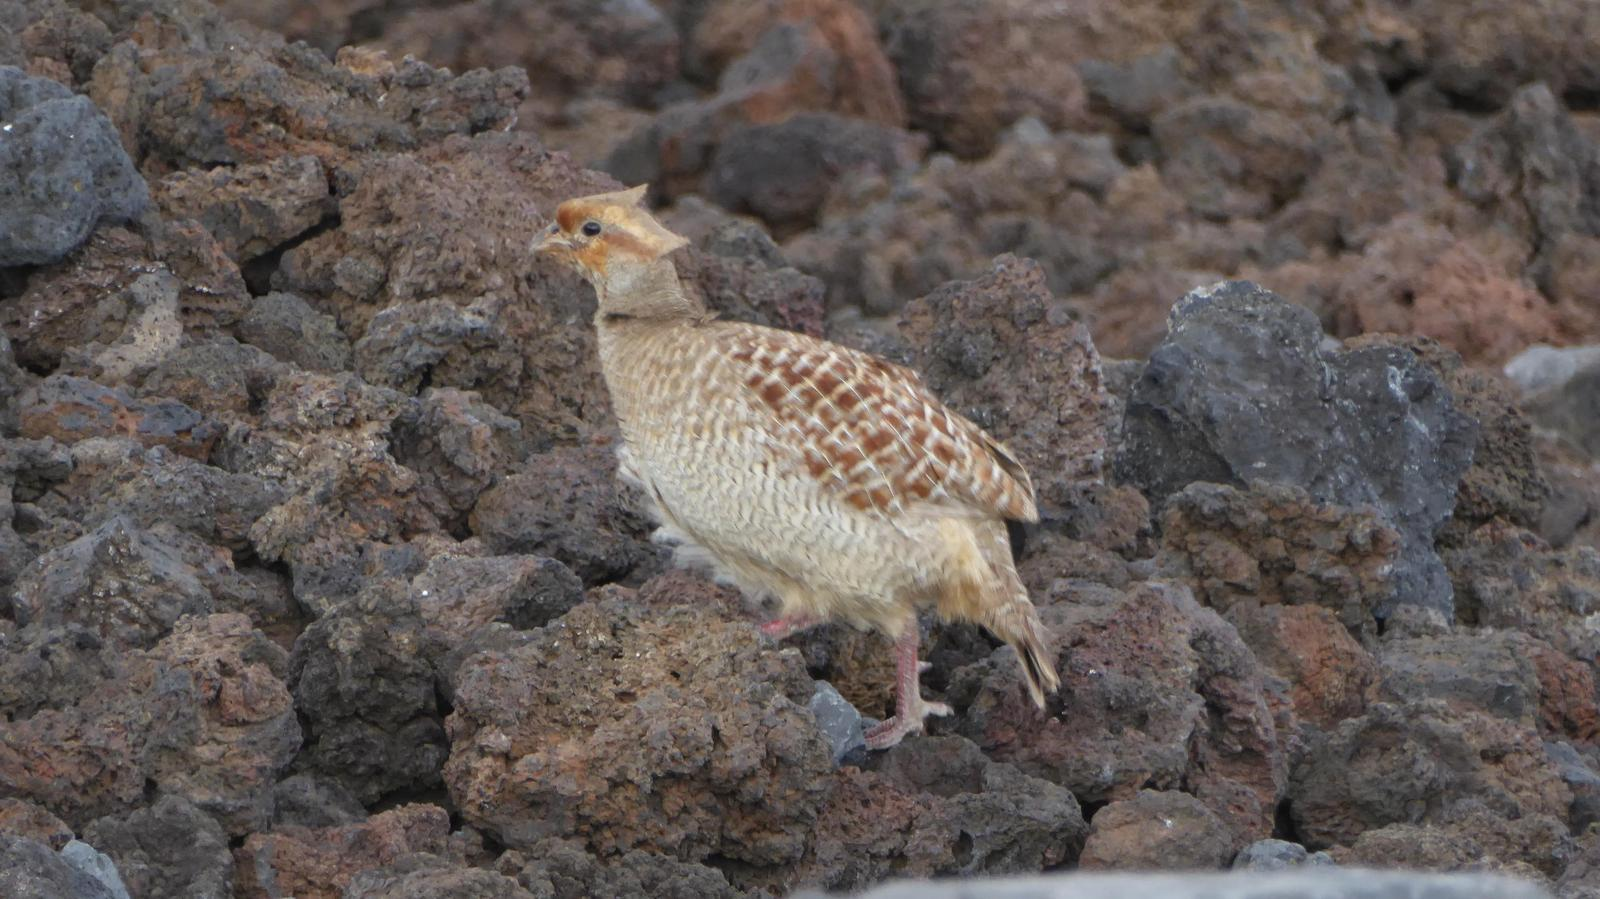 Gray Francolin Photo by Daliel Leite